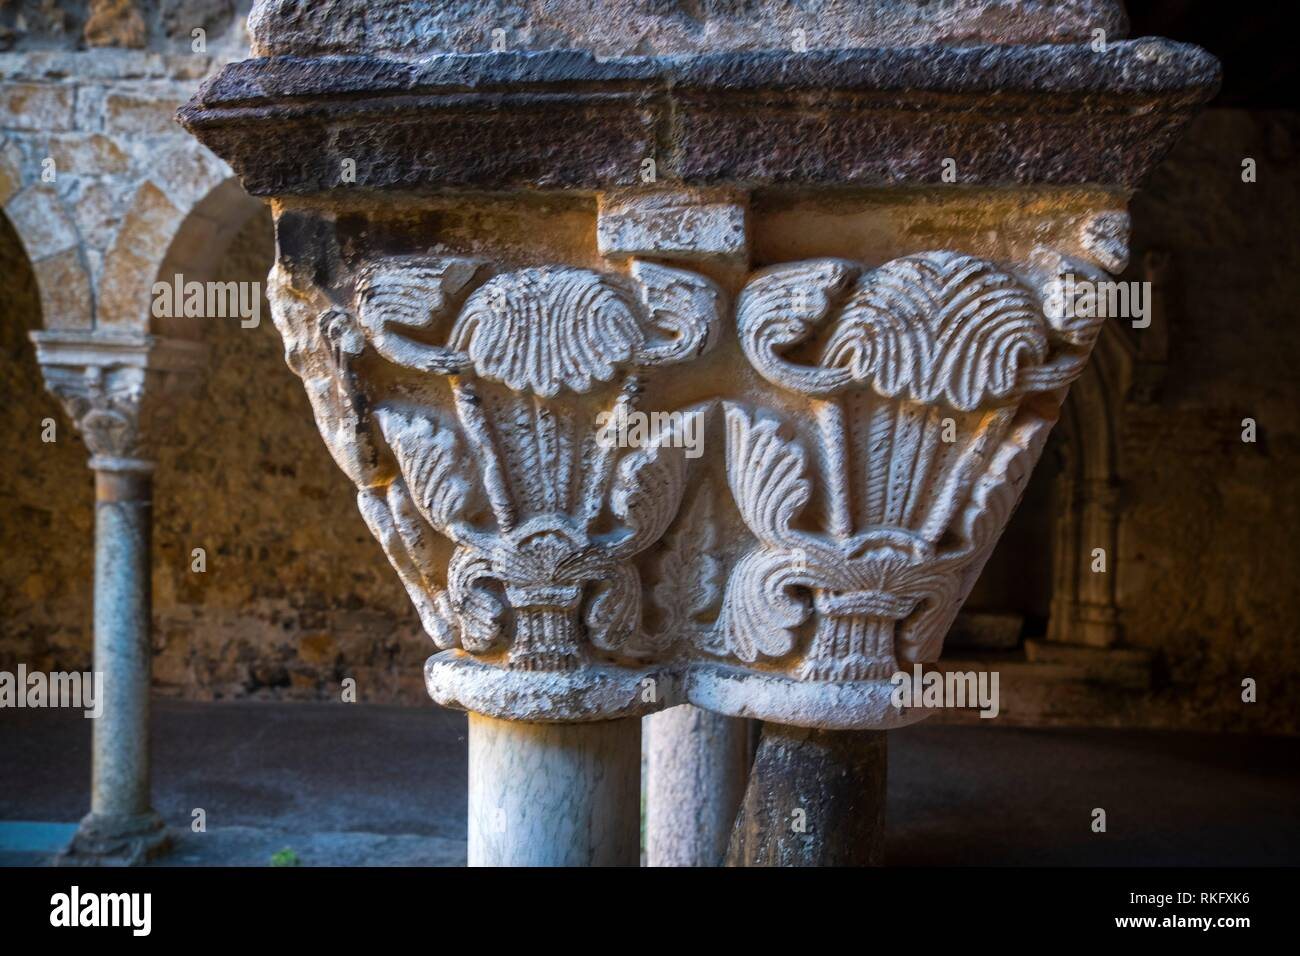 France, Occitanie, Arriege, detail of a column at the cloister (11th Century) of the cathedrale at Saint Ligier. - Stock Image